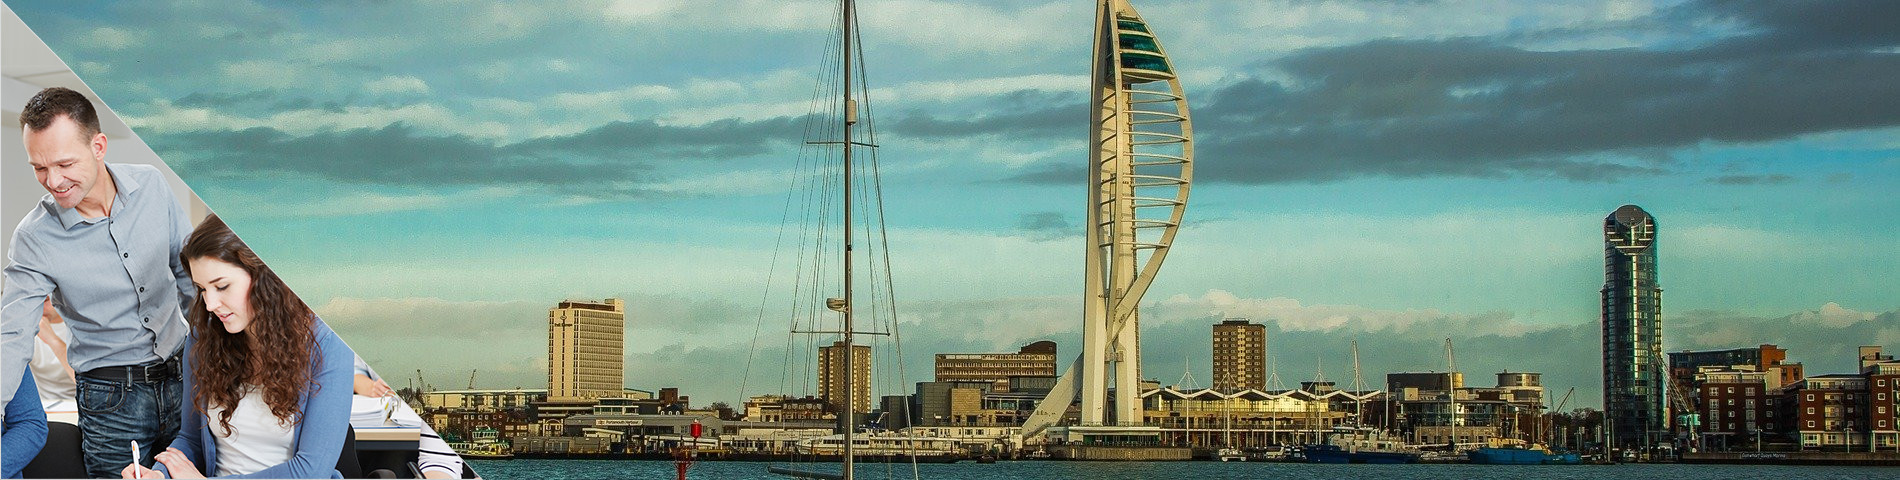 Portsmouth - Combi: Groupe + particuliers